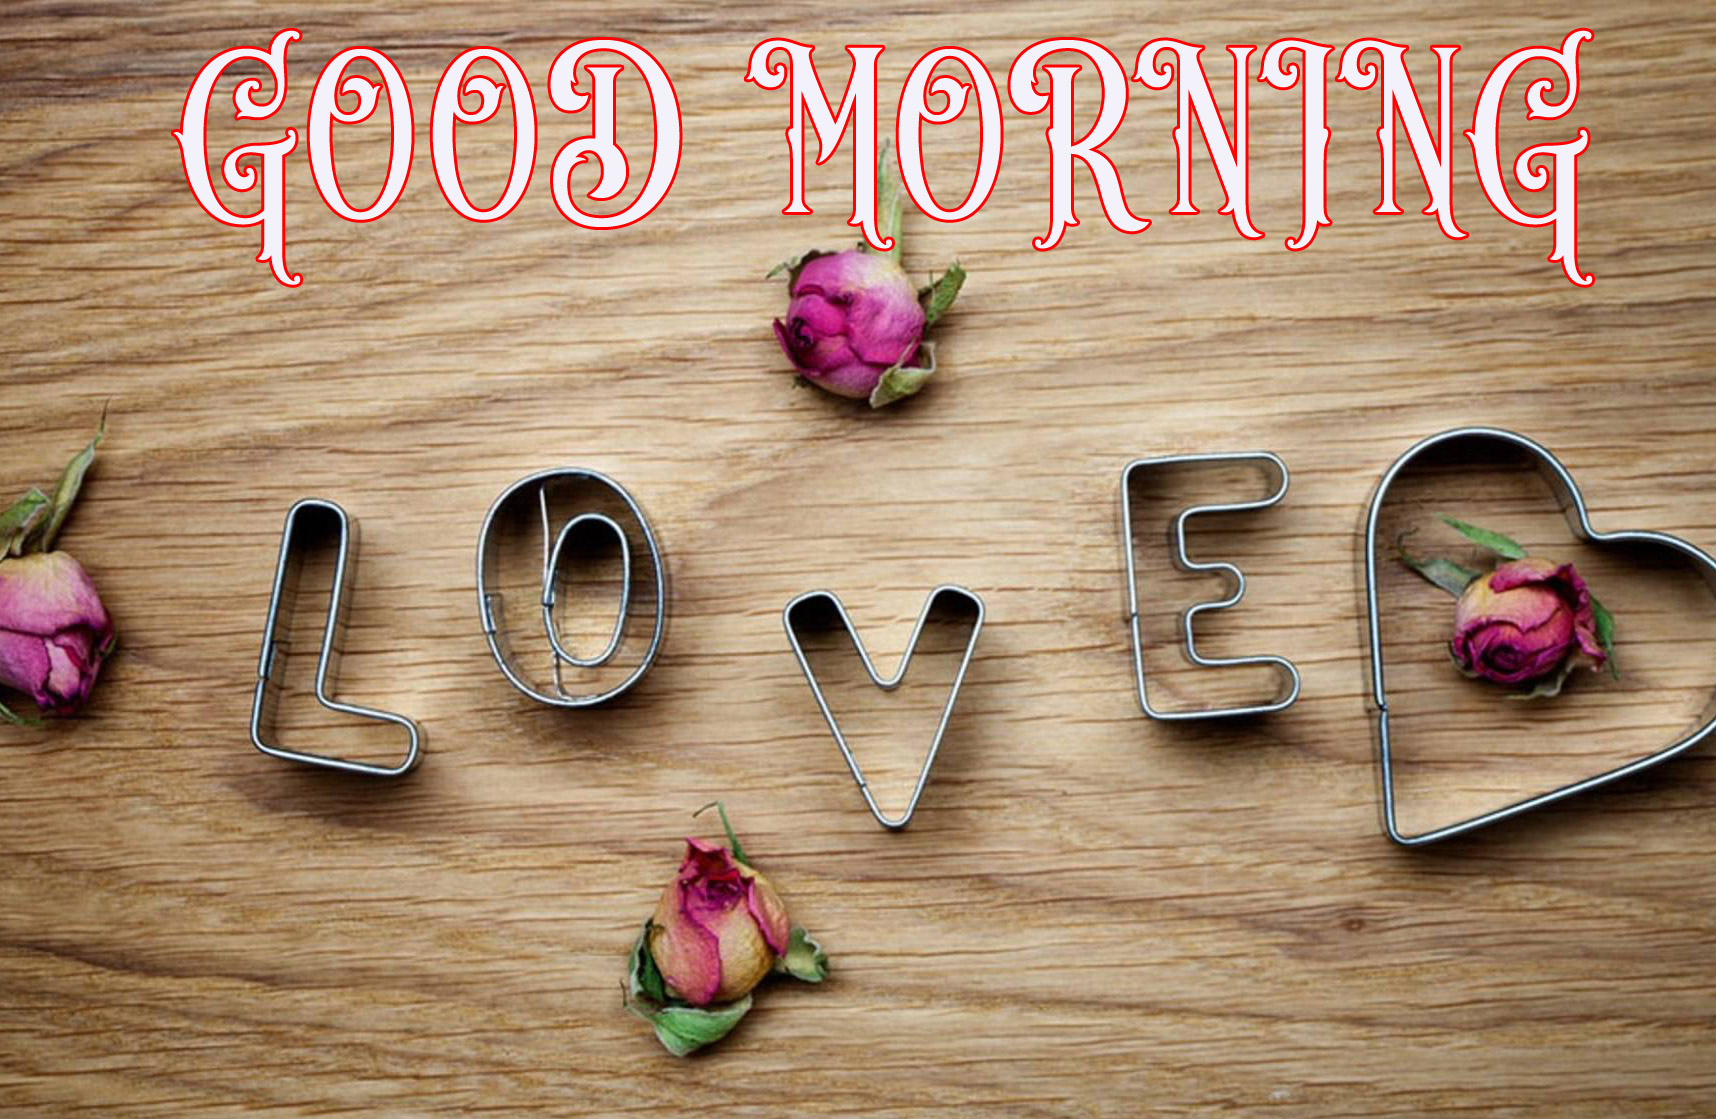 New Lover Good Morning Images Wallpaper Pictures Free HD Download